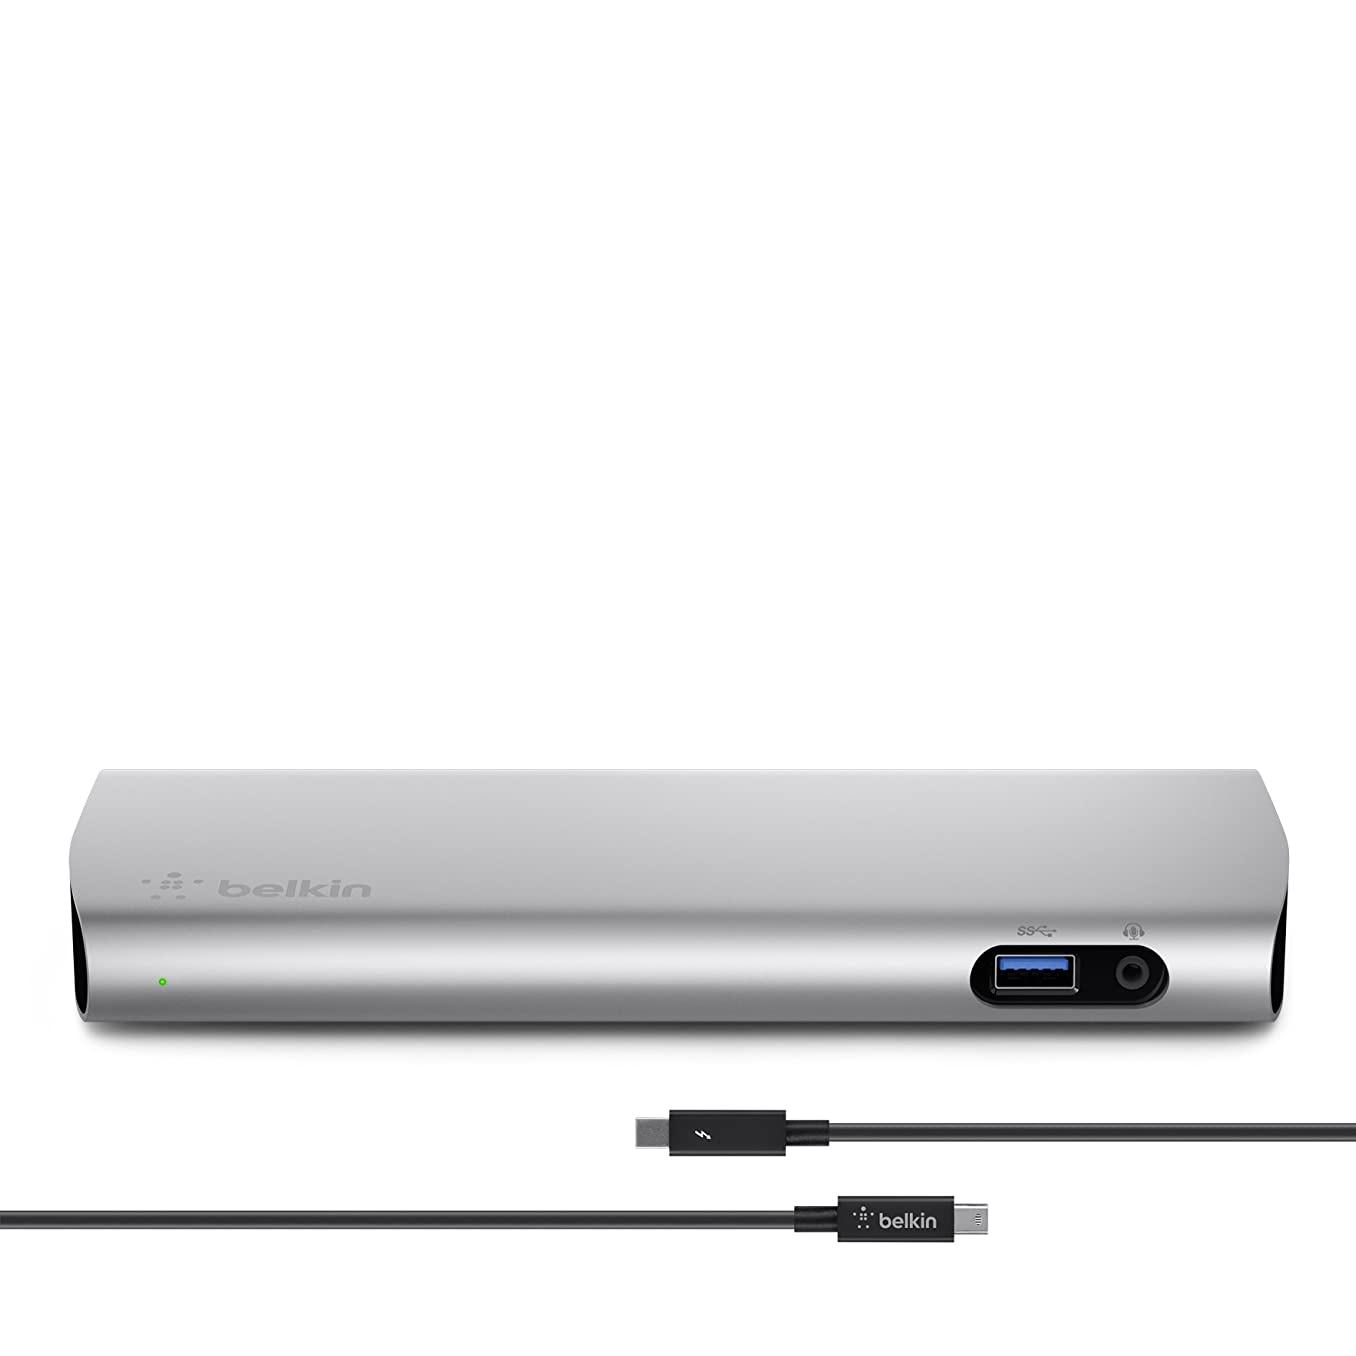 Belkin Thunderbolt 2 Express HD Dock with 1-Meter Thunderbolt Data Transfer Cable, Mac and PC Compatible (F4U085tt)